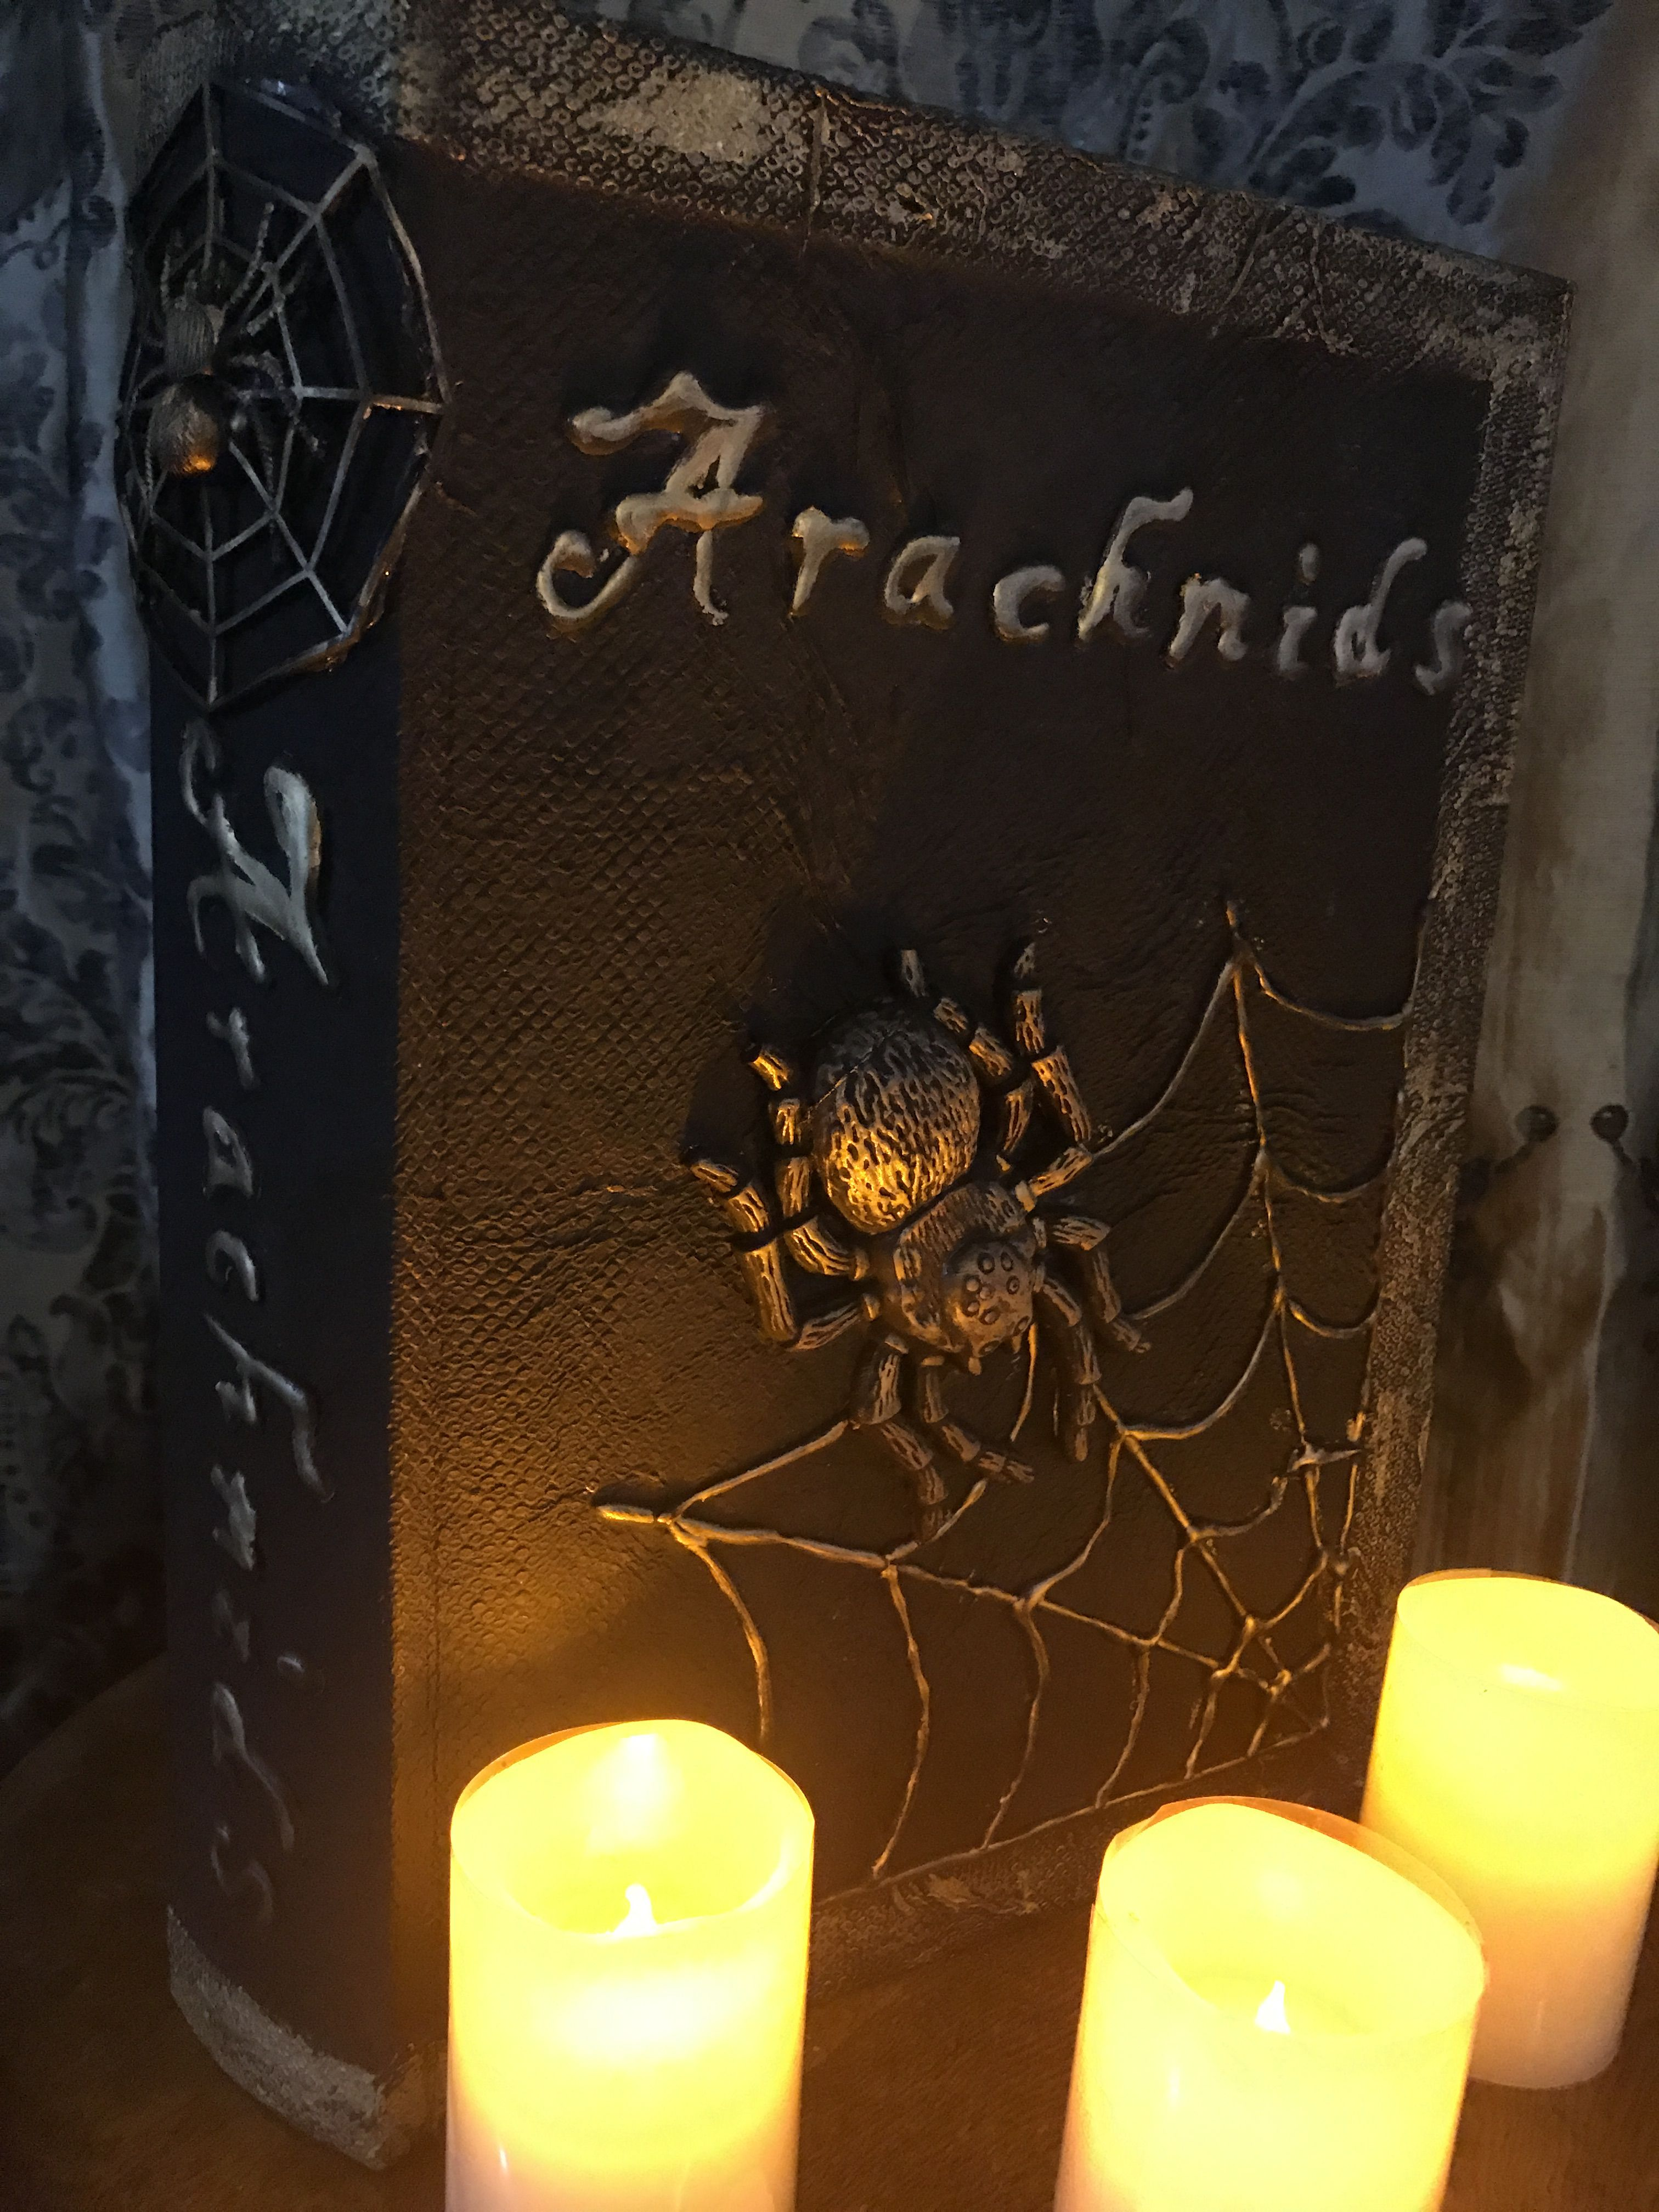 Arachnid Halloween Book. Modge Podged a paper towel over a faux book. Used a glue gun to draw the web and letters. Glued a rubber spider to the front. Painted all black then used gold Rub n Buff to highlight